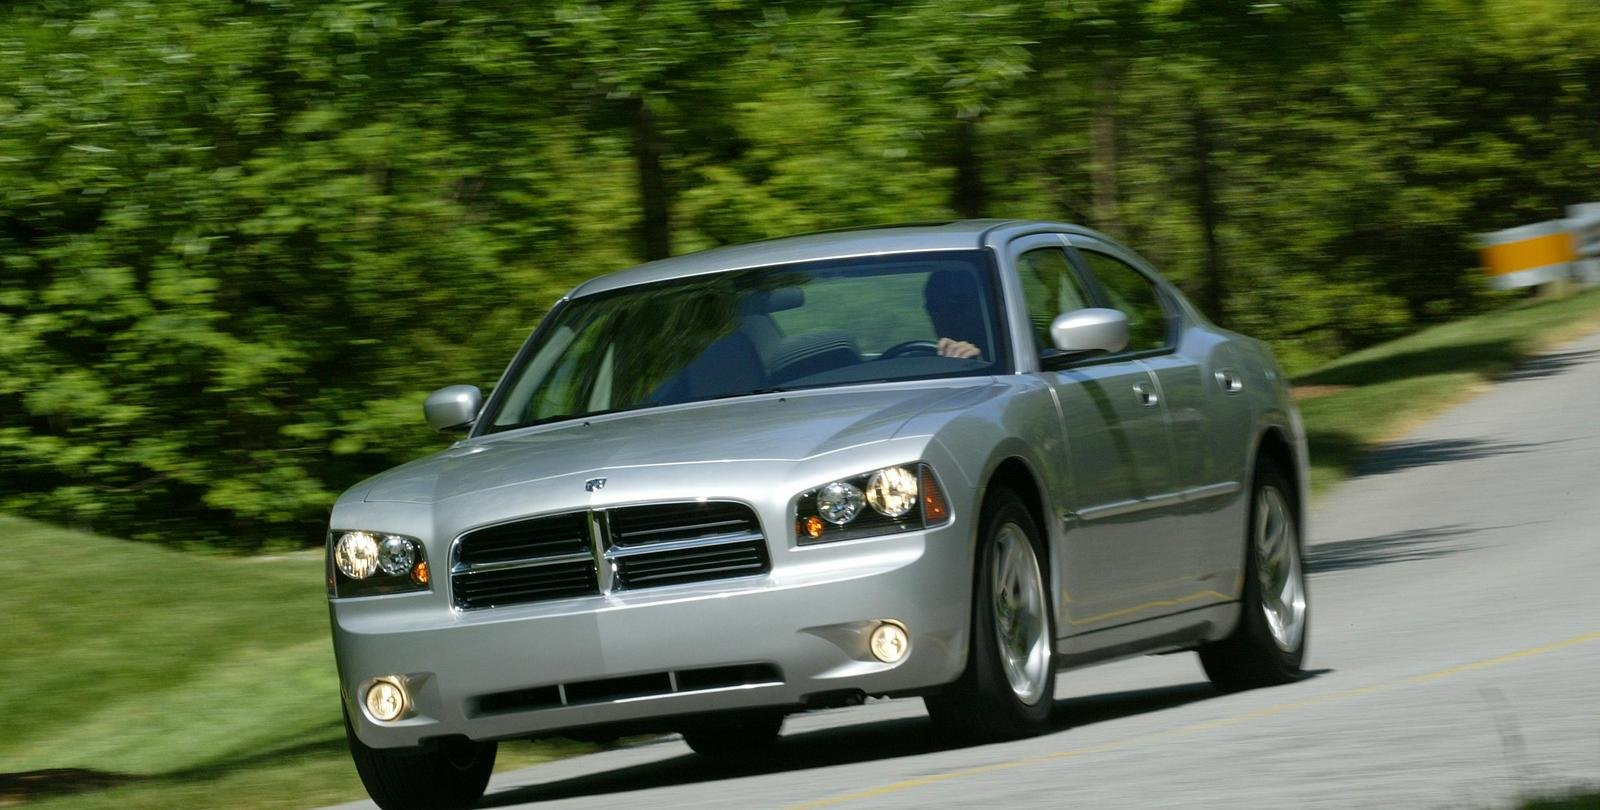 2006 dodge charger picture 63635 car review top speed. Black Bedroom Furniture Sets. Home Design Ideas